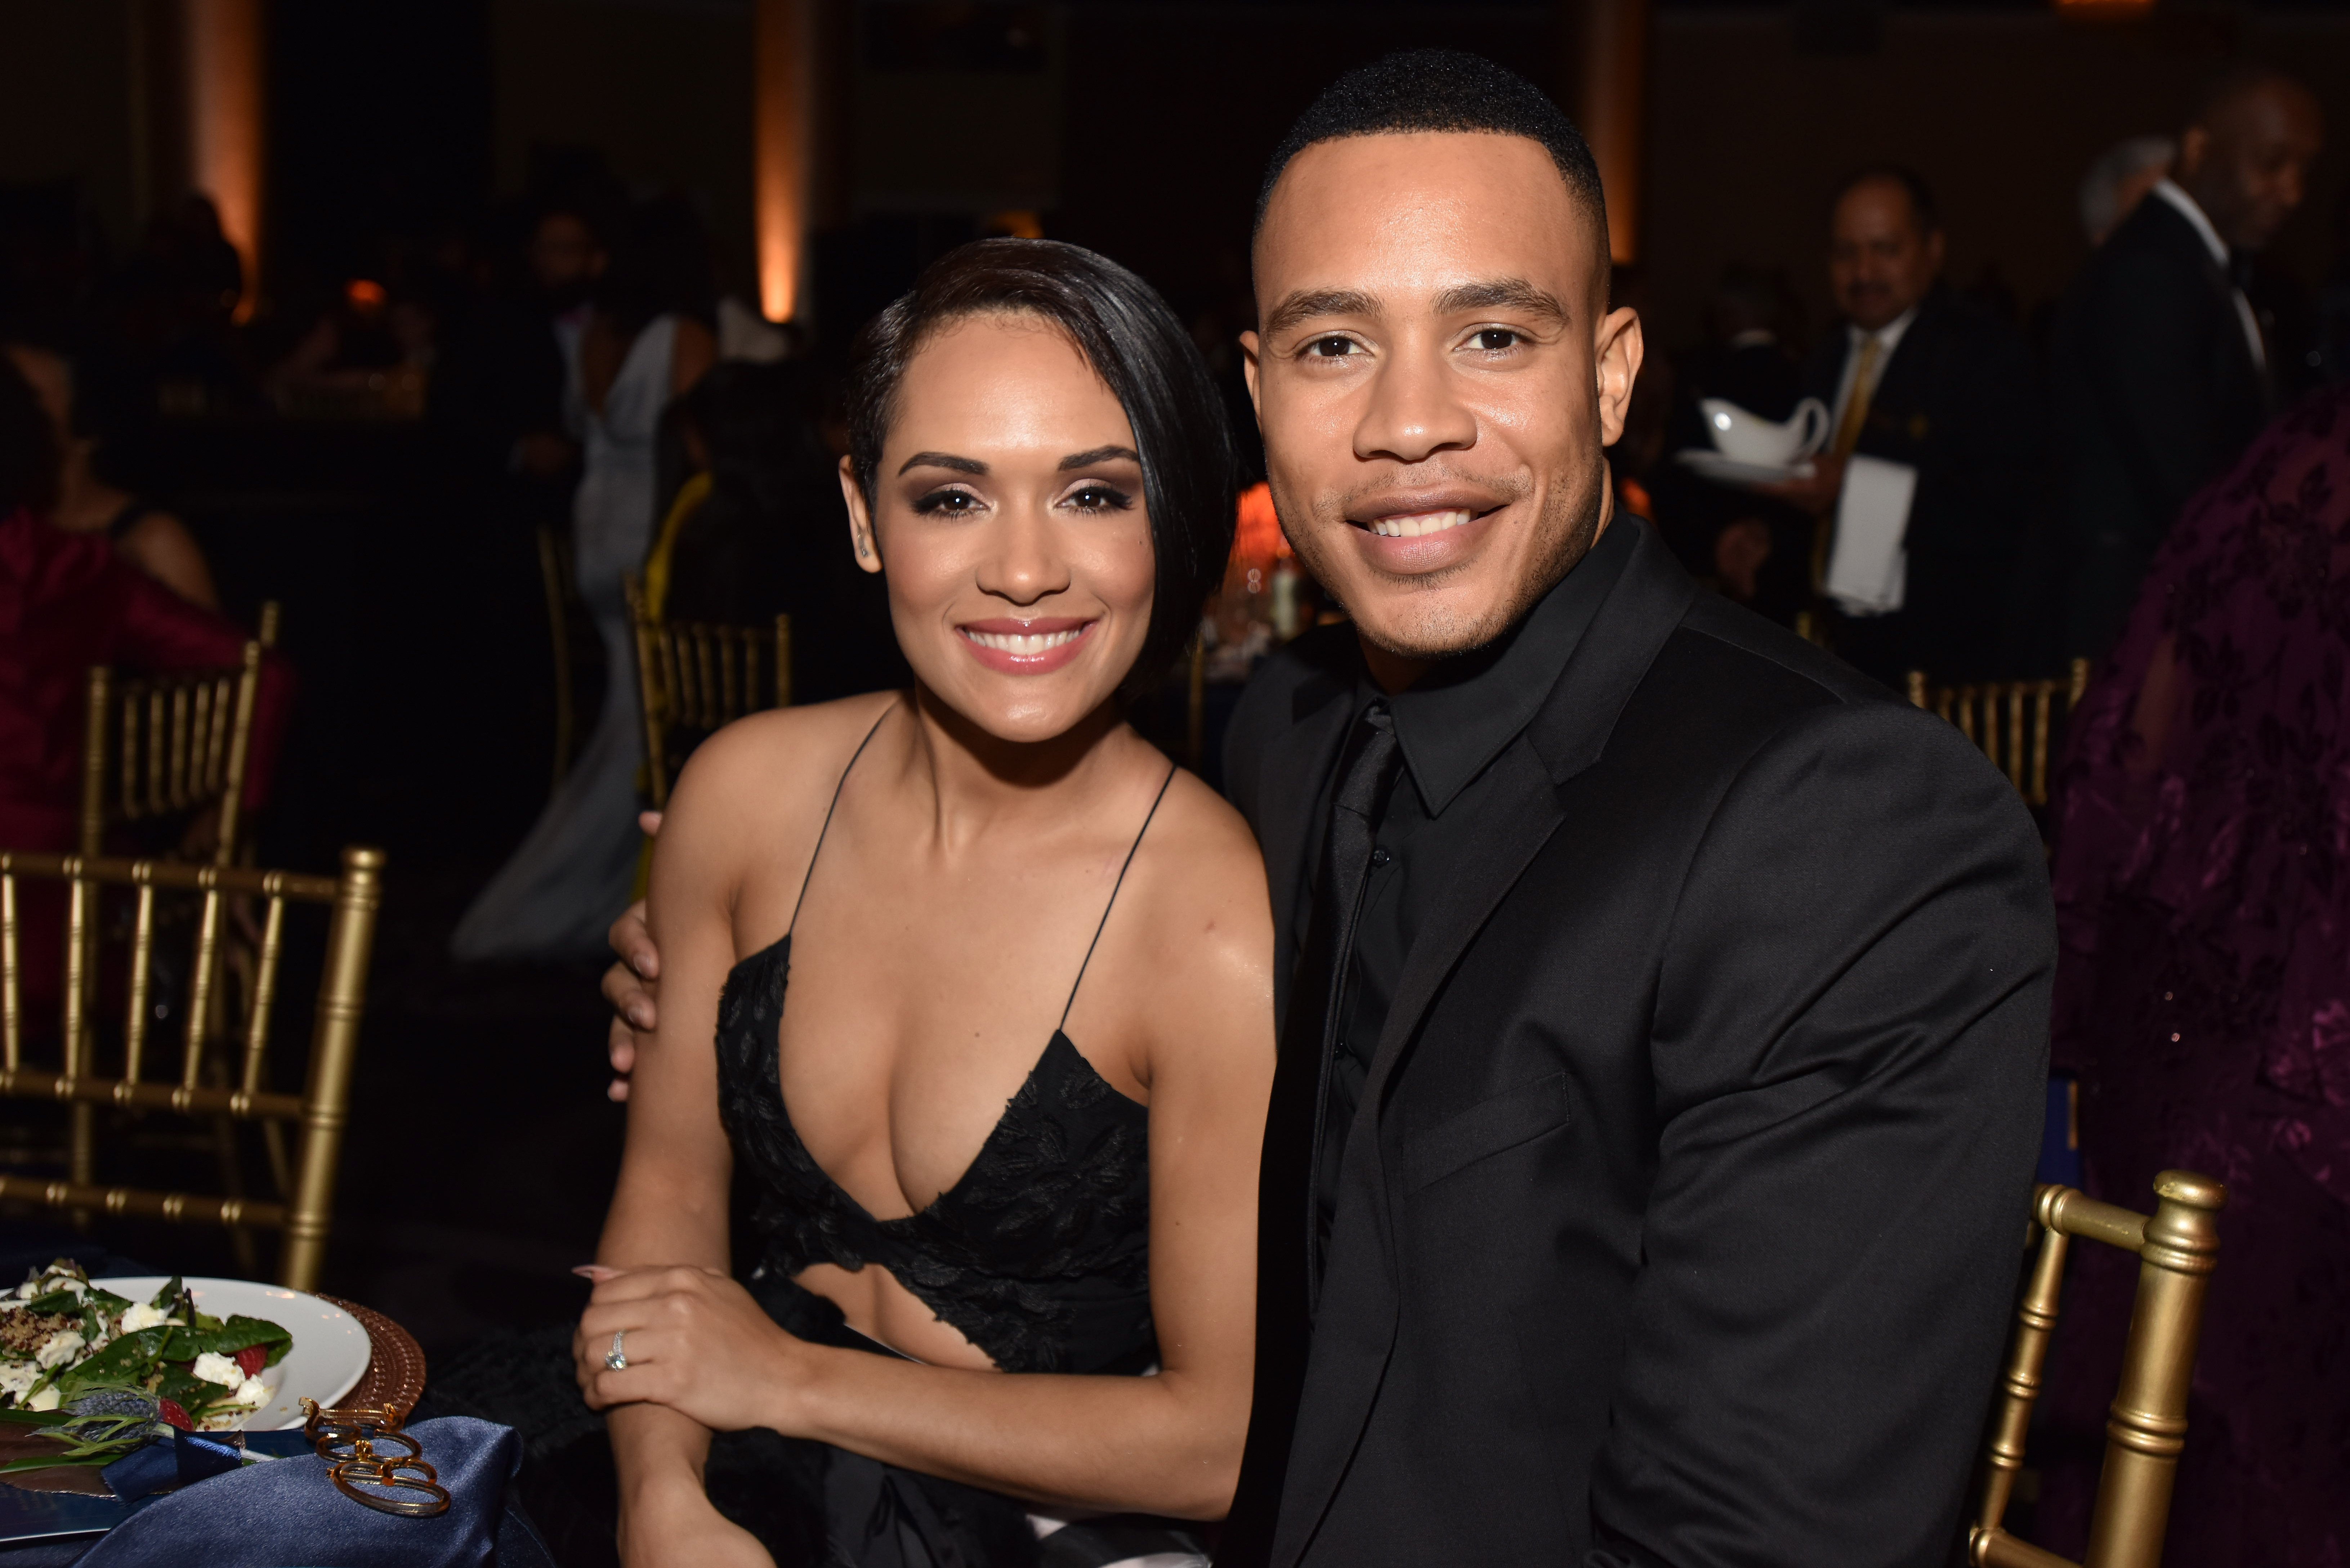 Grace Gealey & Trai Byers attend BET Presents the American Black Film Festival Honors on Feb. 17, 2017 in California | Photo: Getty Images